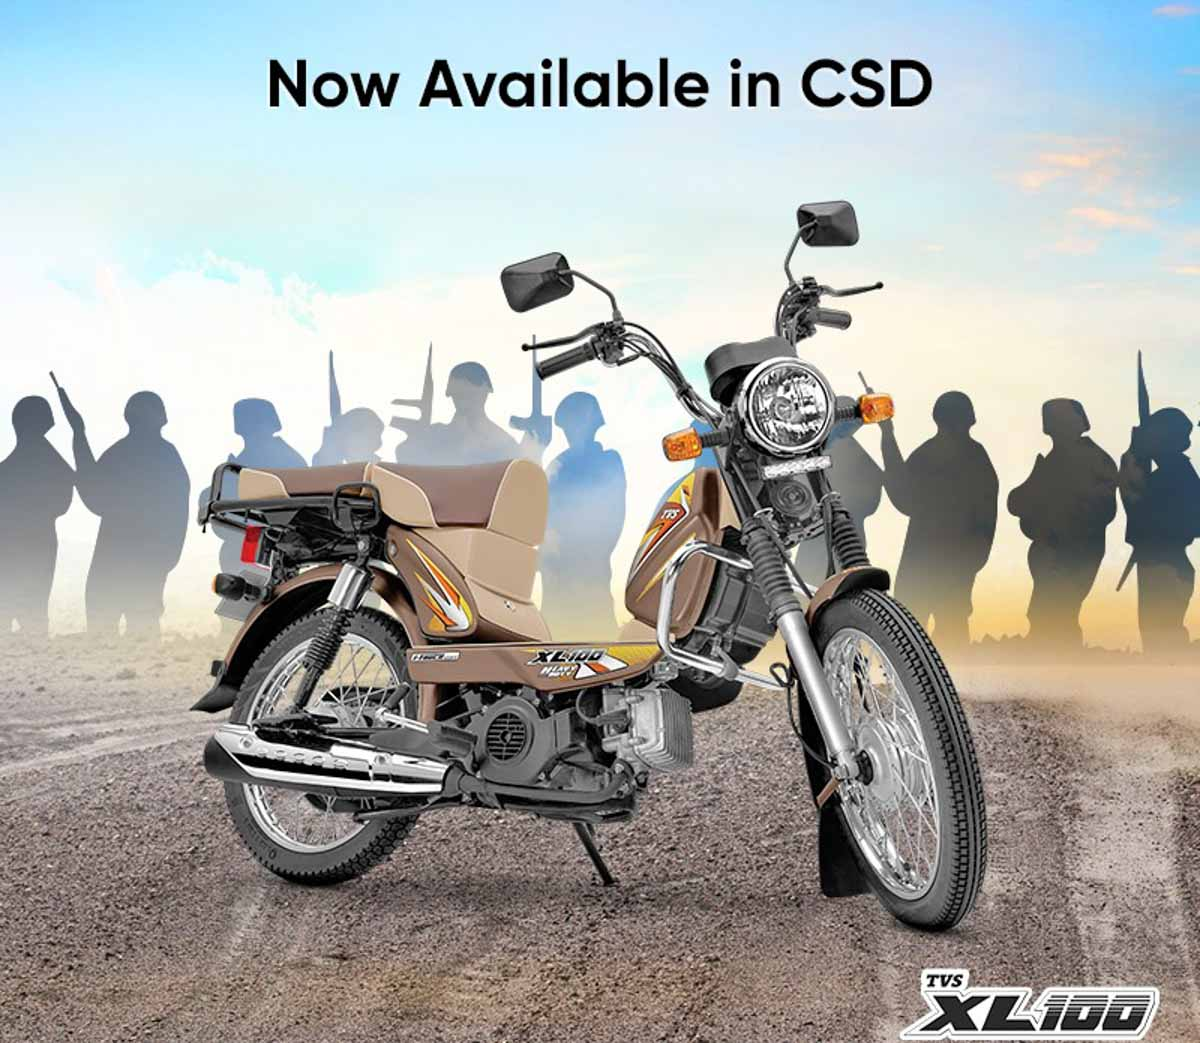 Tvs Xl100 I Touch Hd Now Offered In Csd For Service Officials